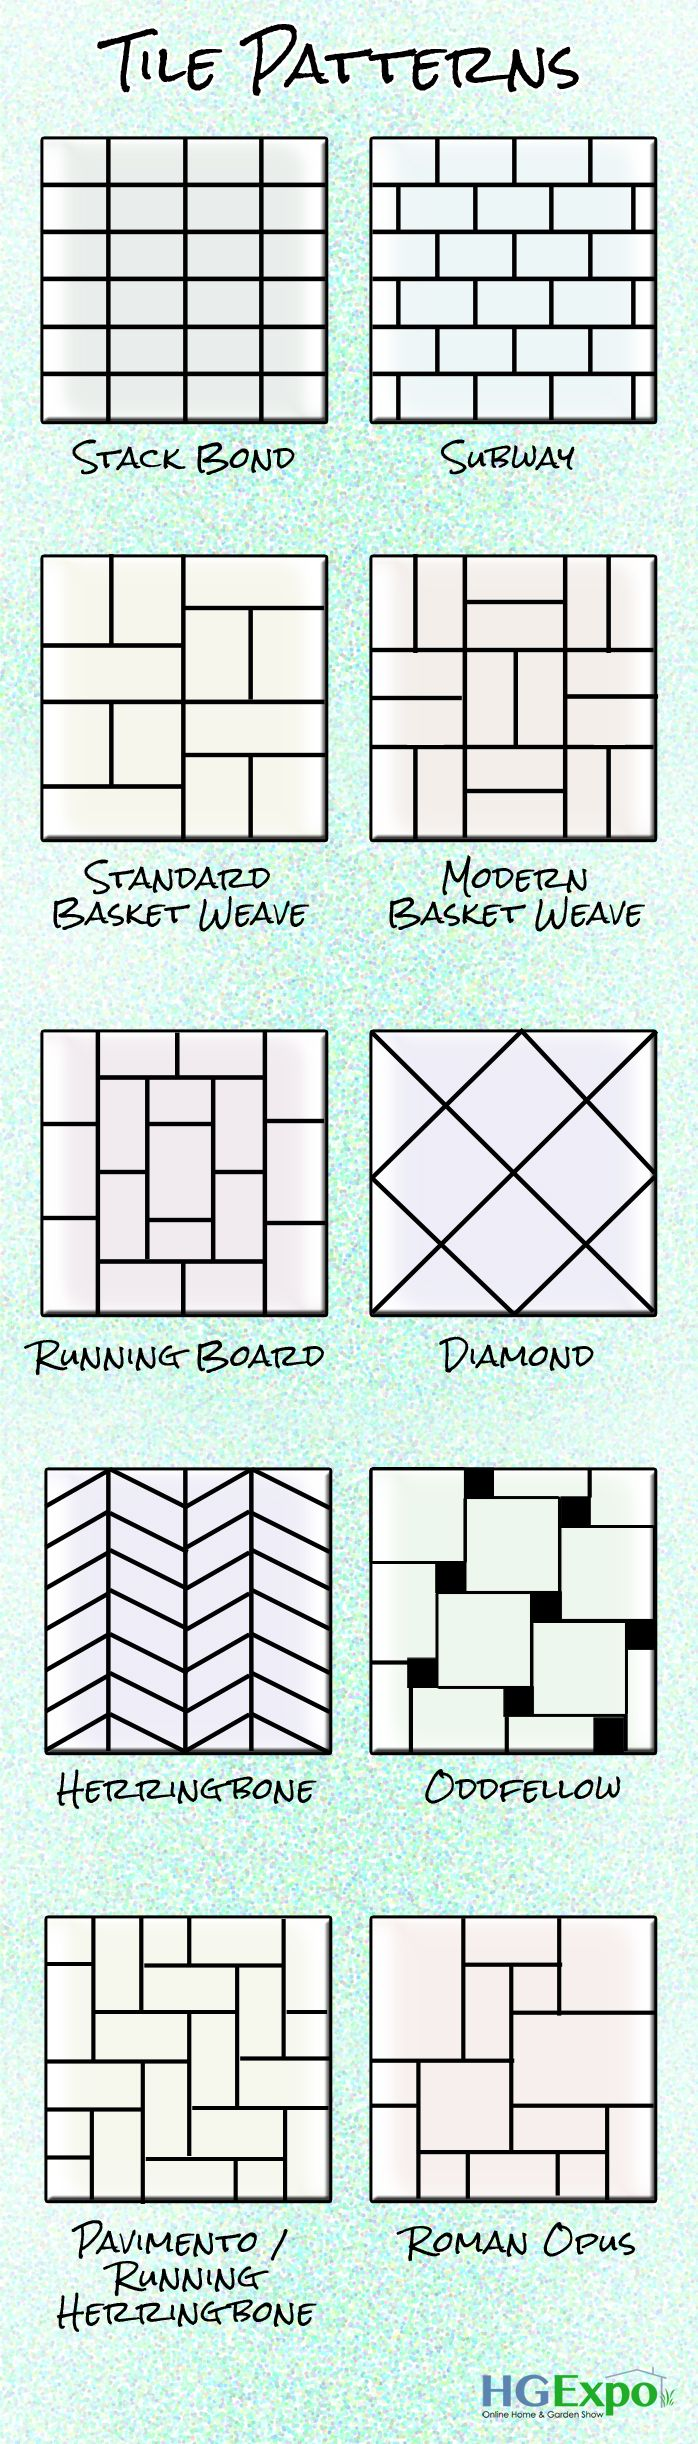 15 luxury bathroom tile patterns ideas